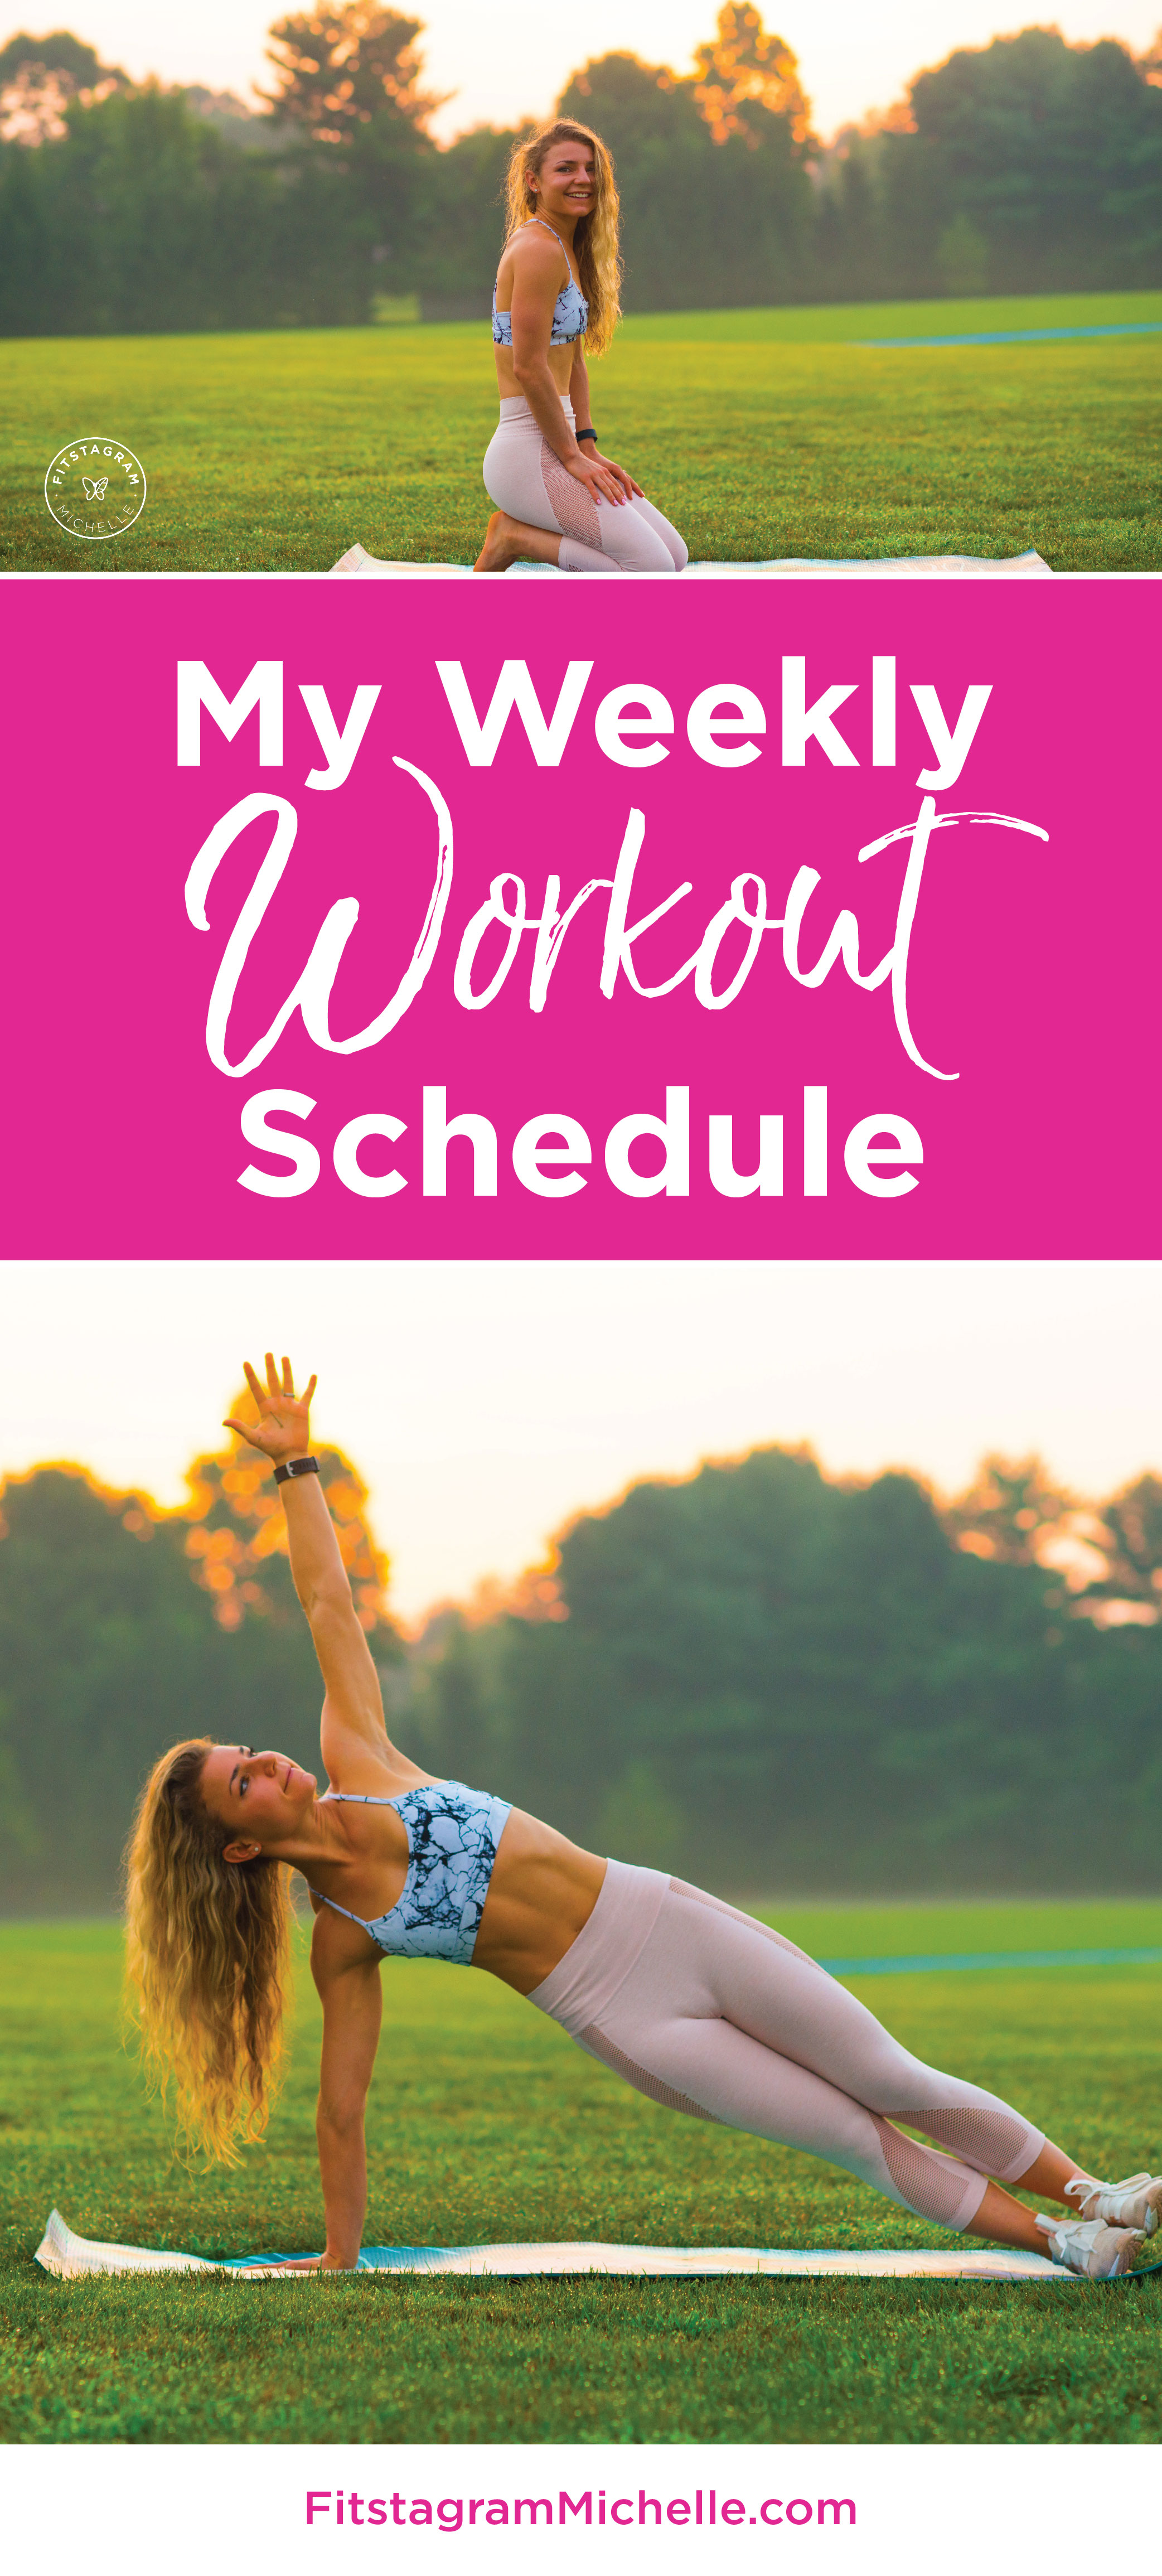 Fitstagram Michelle's weekly workout schedule plus a free at-home ab workout.